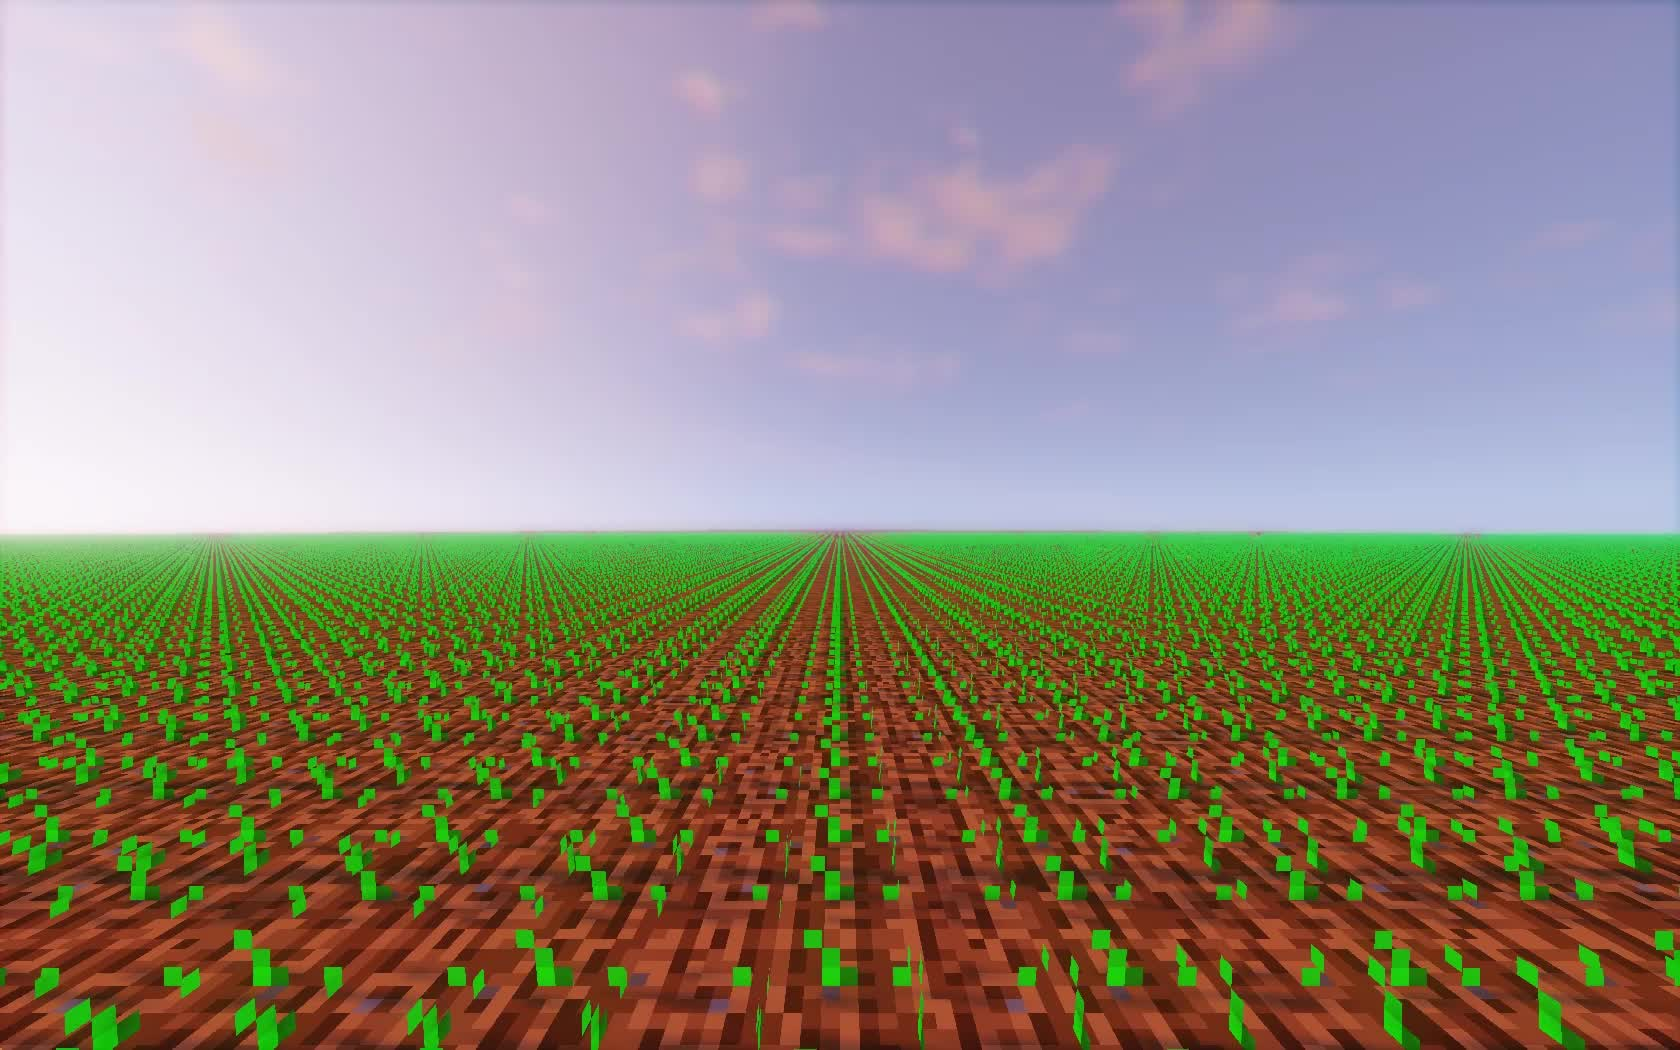 Minecraft wheat growing GIFs